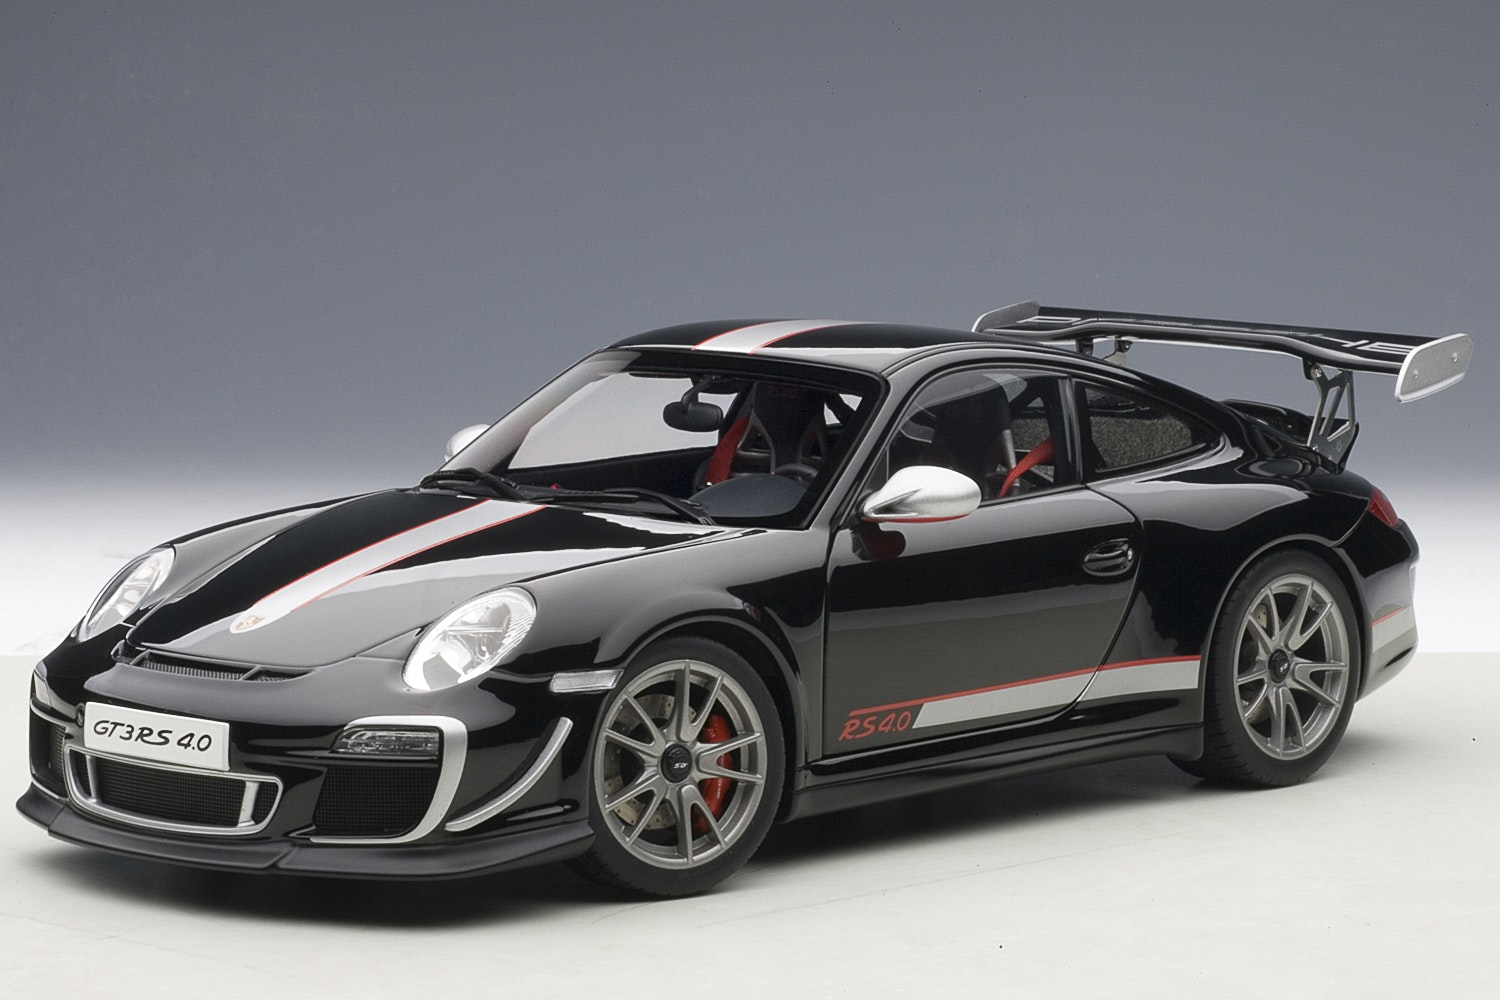 Porsche 911 (997) GT3 RS 4.0, Gloss Black